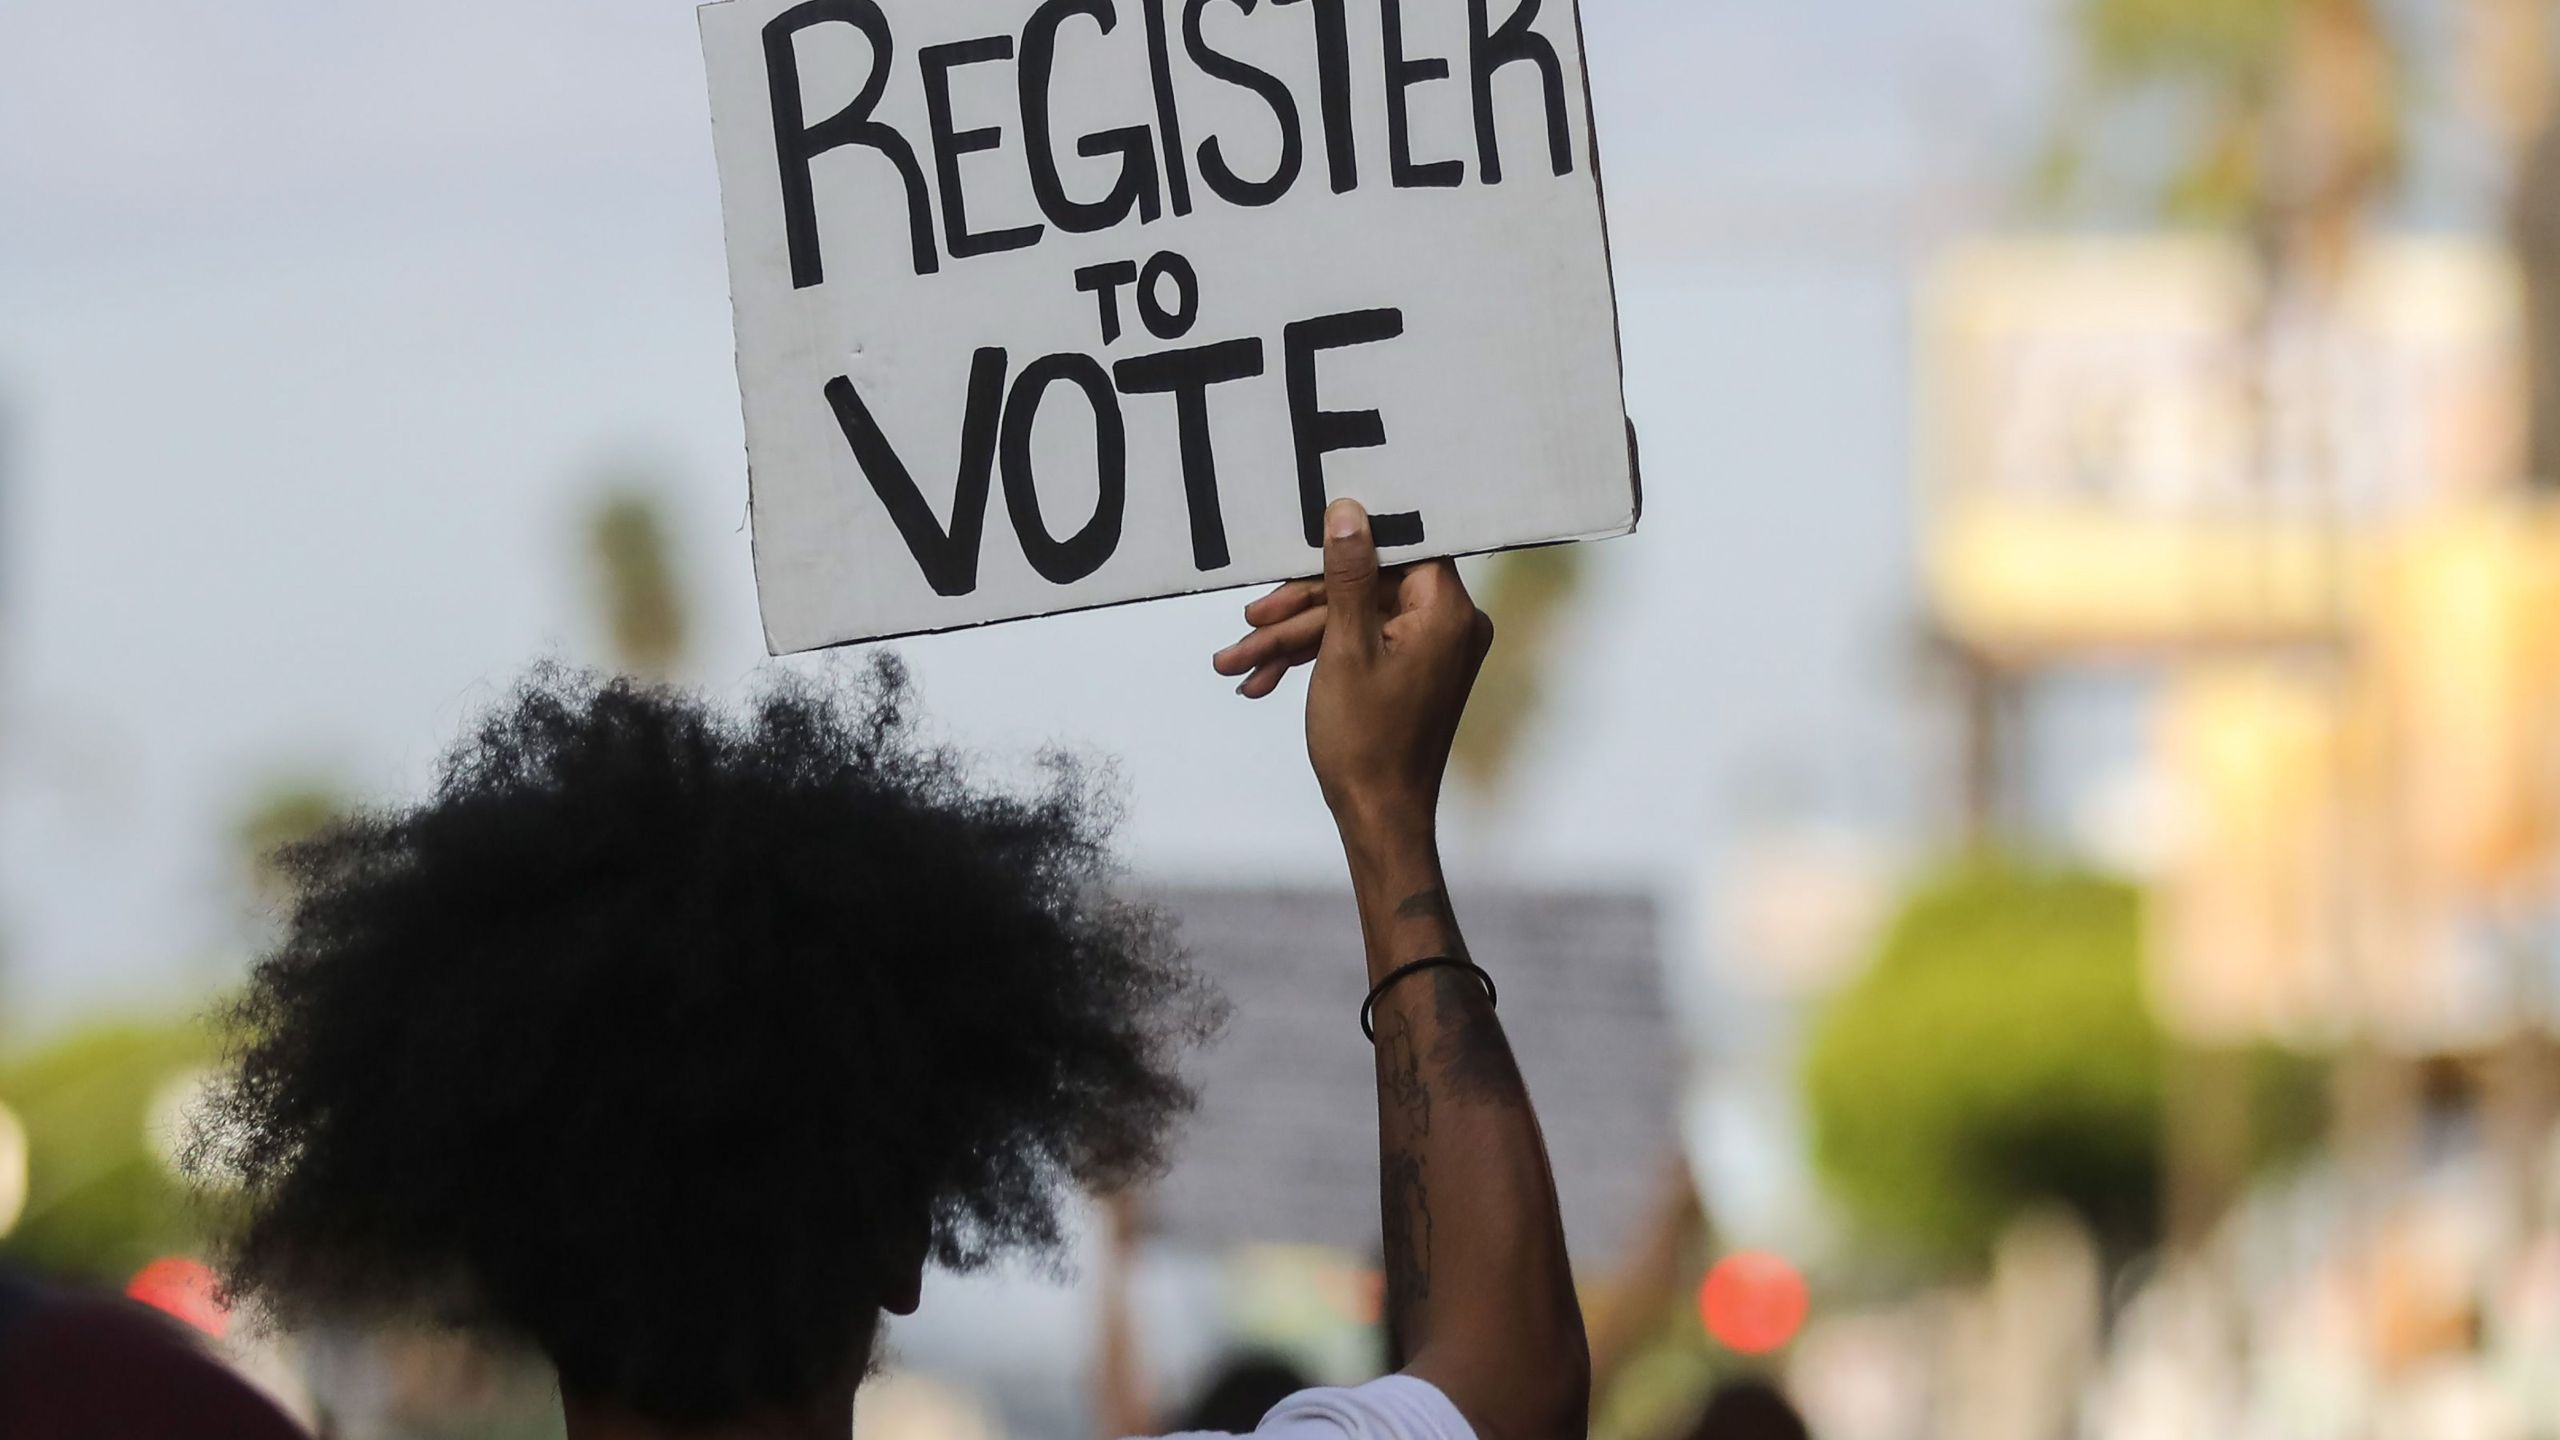 A protester carries a 'Register to Vote' sign during a peaceful demonstration against racism and police brutality on June 6, 2020 in Los Angeles. (Mario Tama/Getty Images)